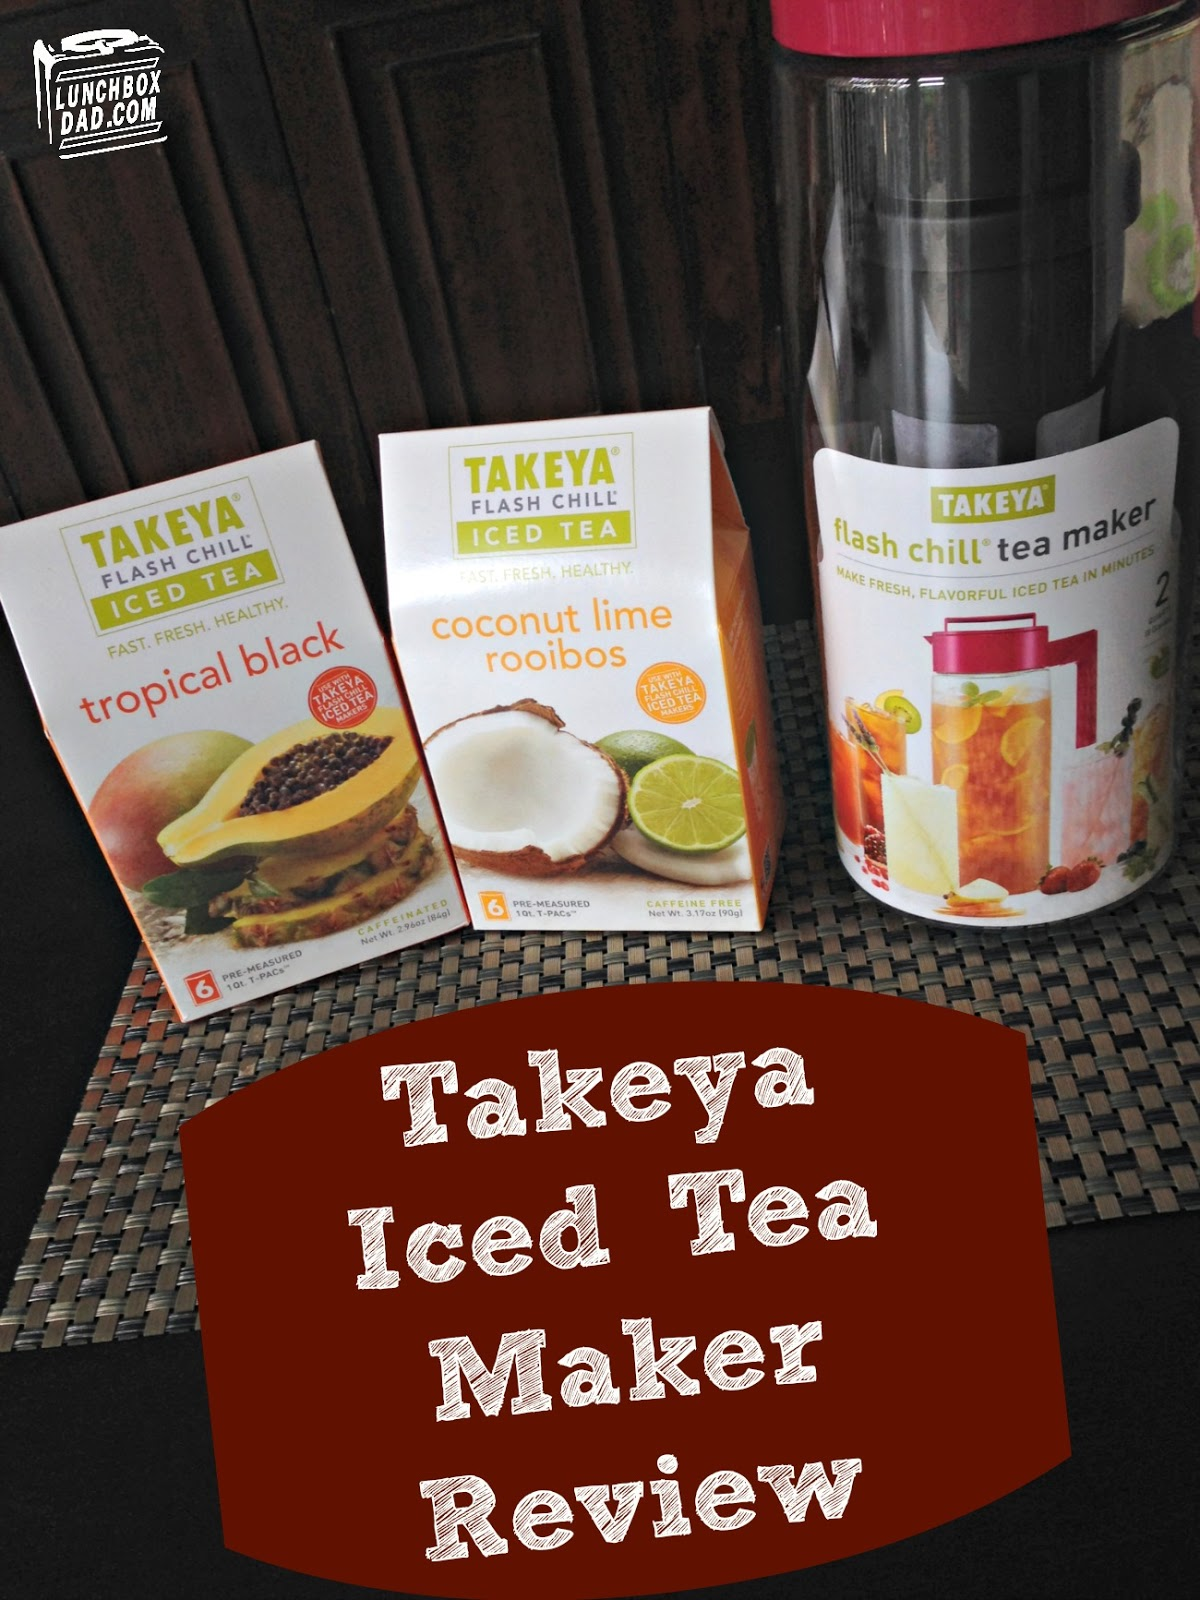 Takeya Iced Tea Maker Review